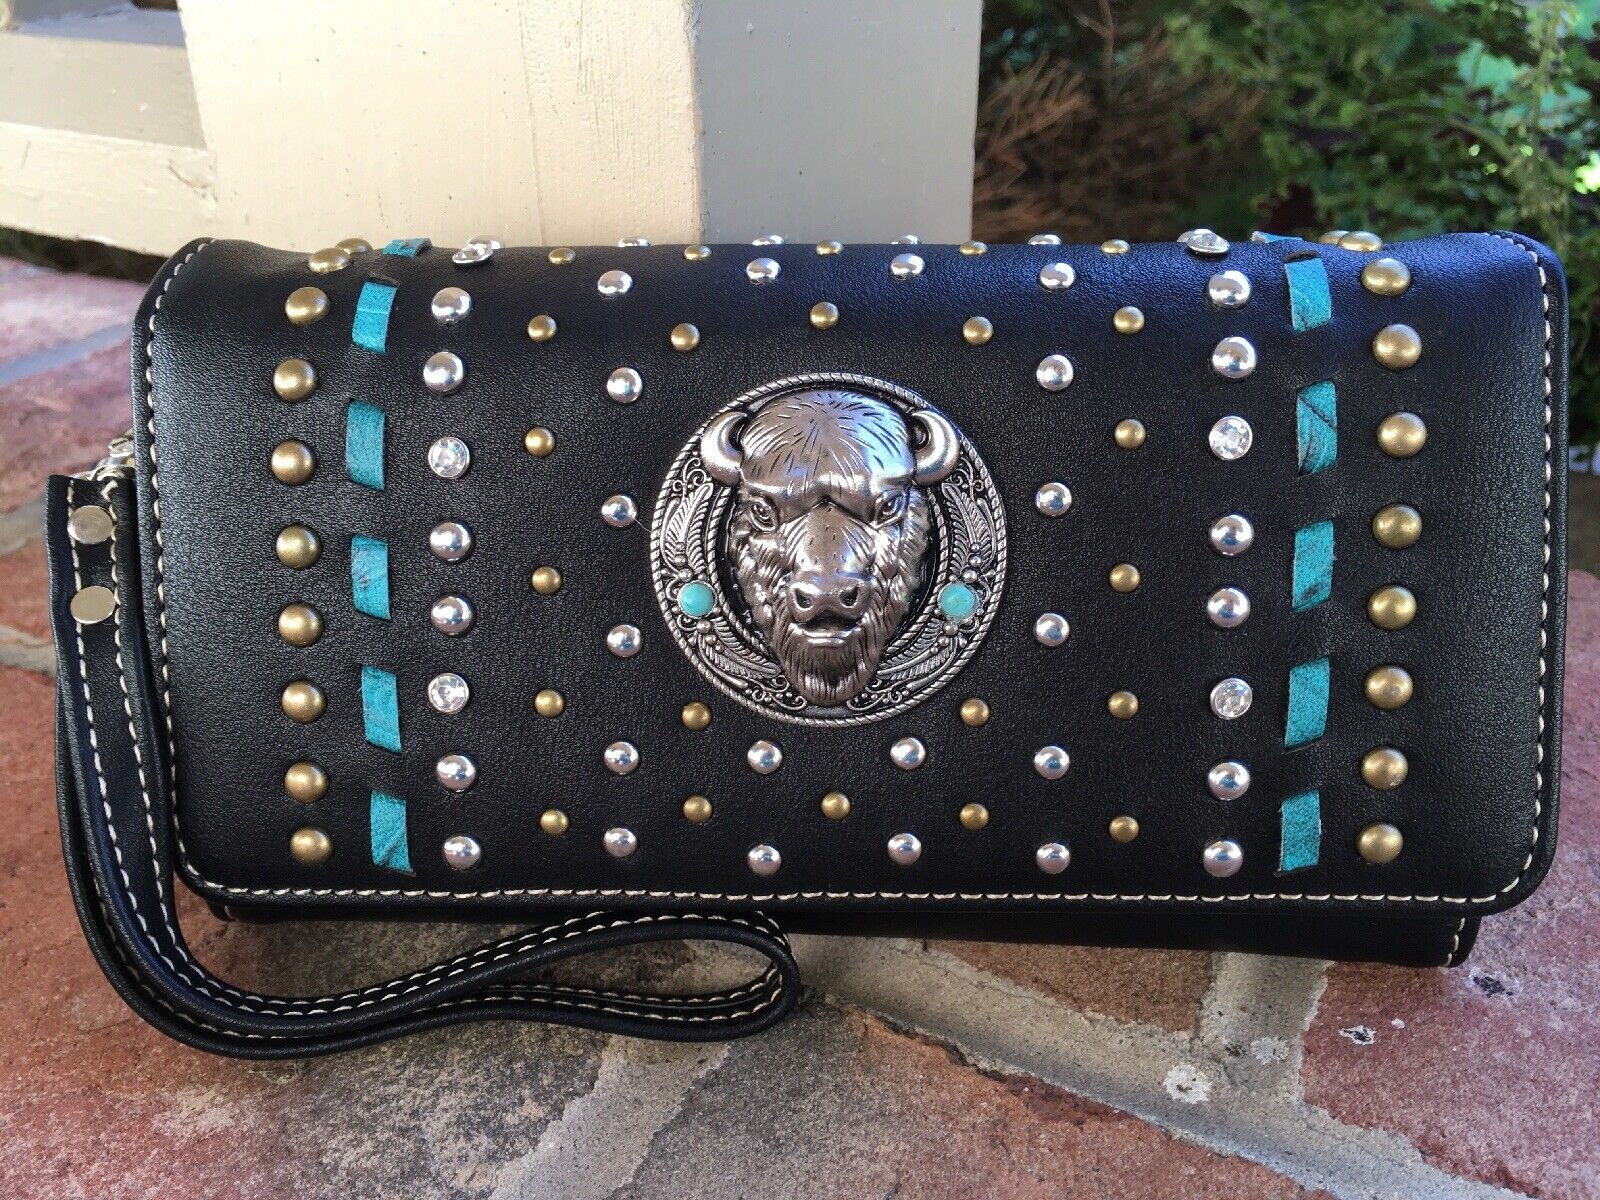 Montana West Concho Stud Collection Wallet Black PU Leather Blue/Black